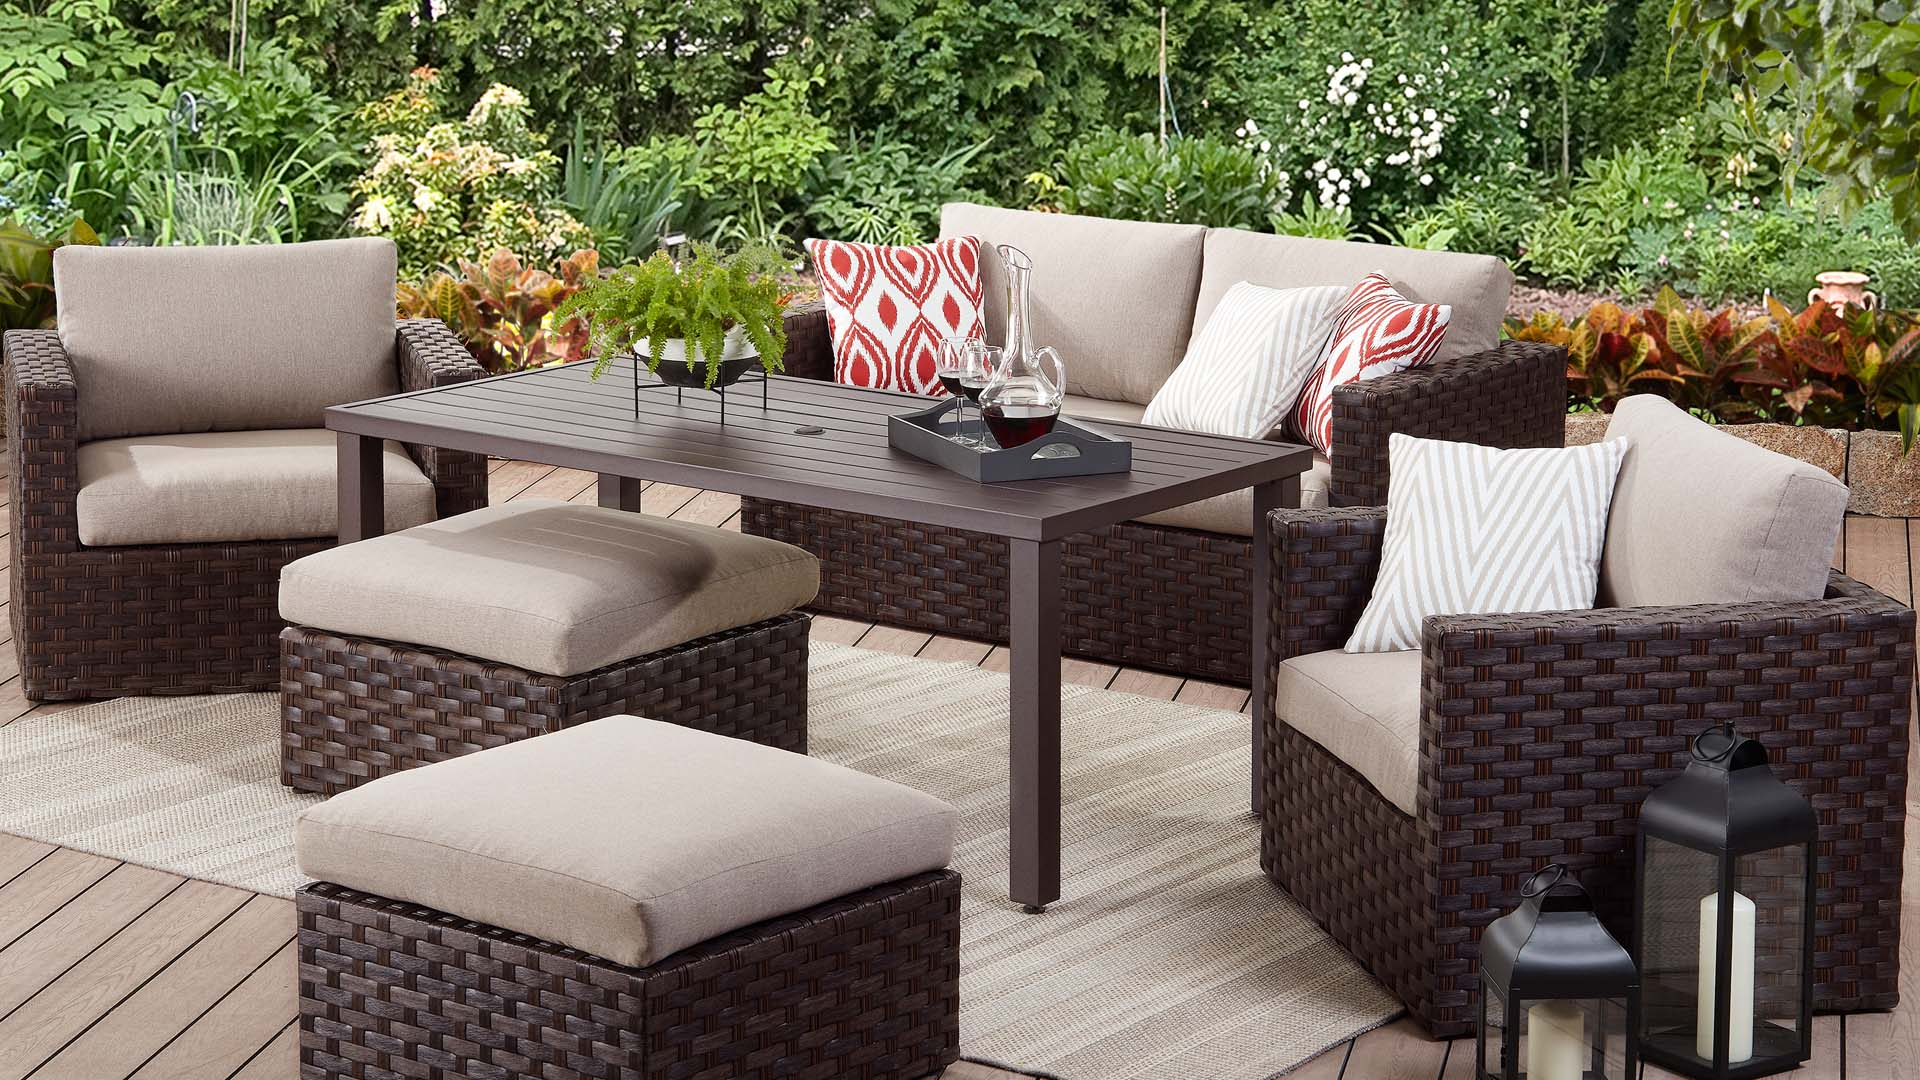 Purchase  Better Homes Gardens Patio Loveseat In Walmart Memorial Day Sale Through Lemoney